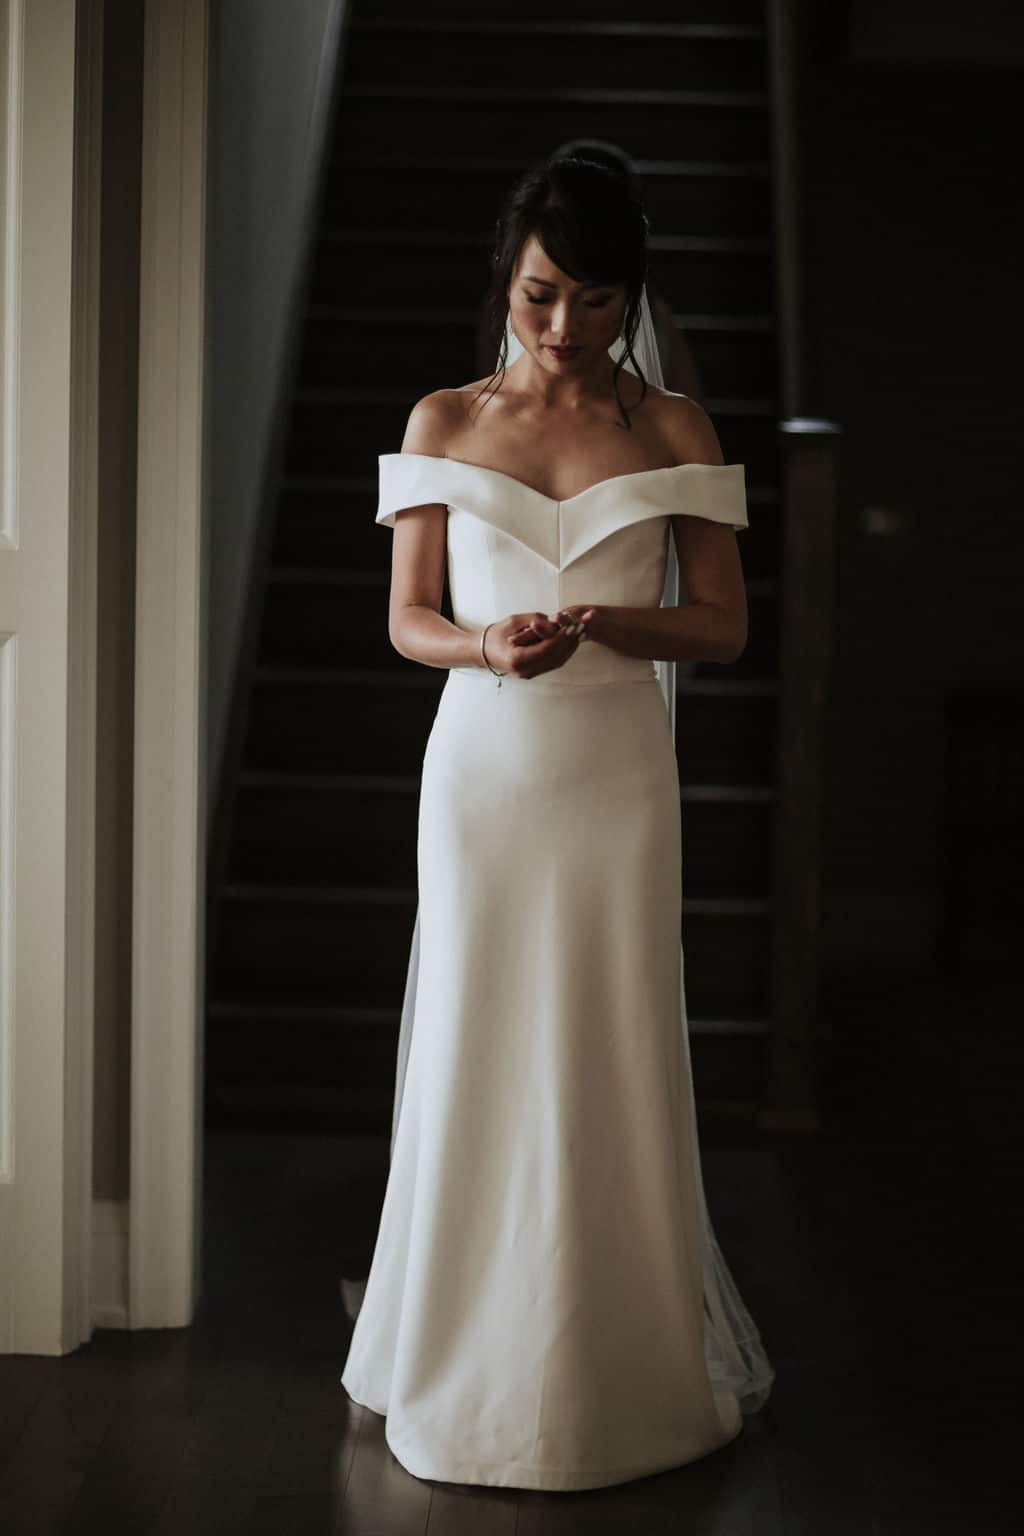 Bride in dark dress